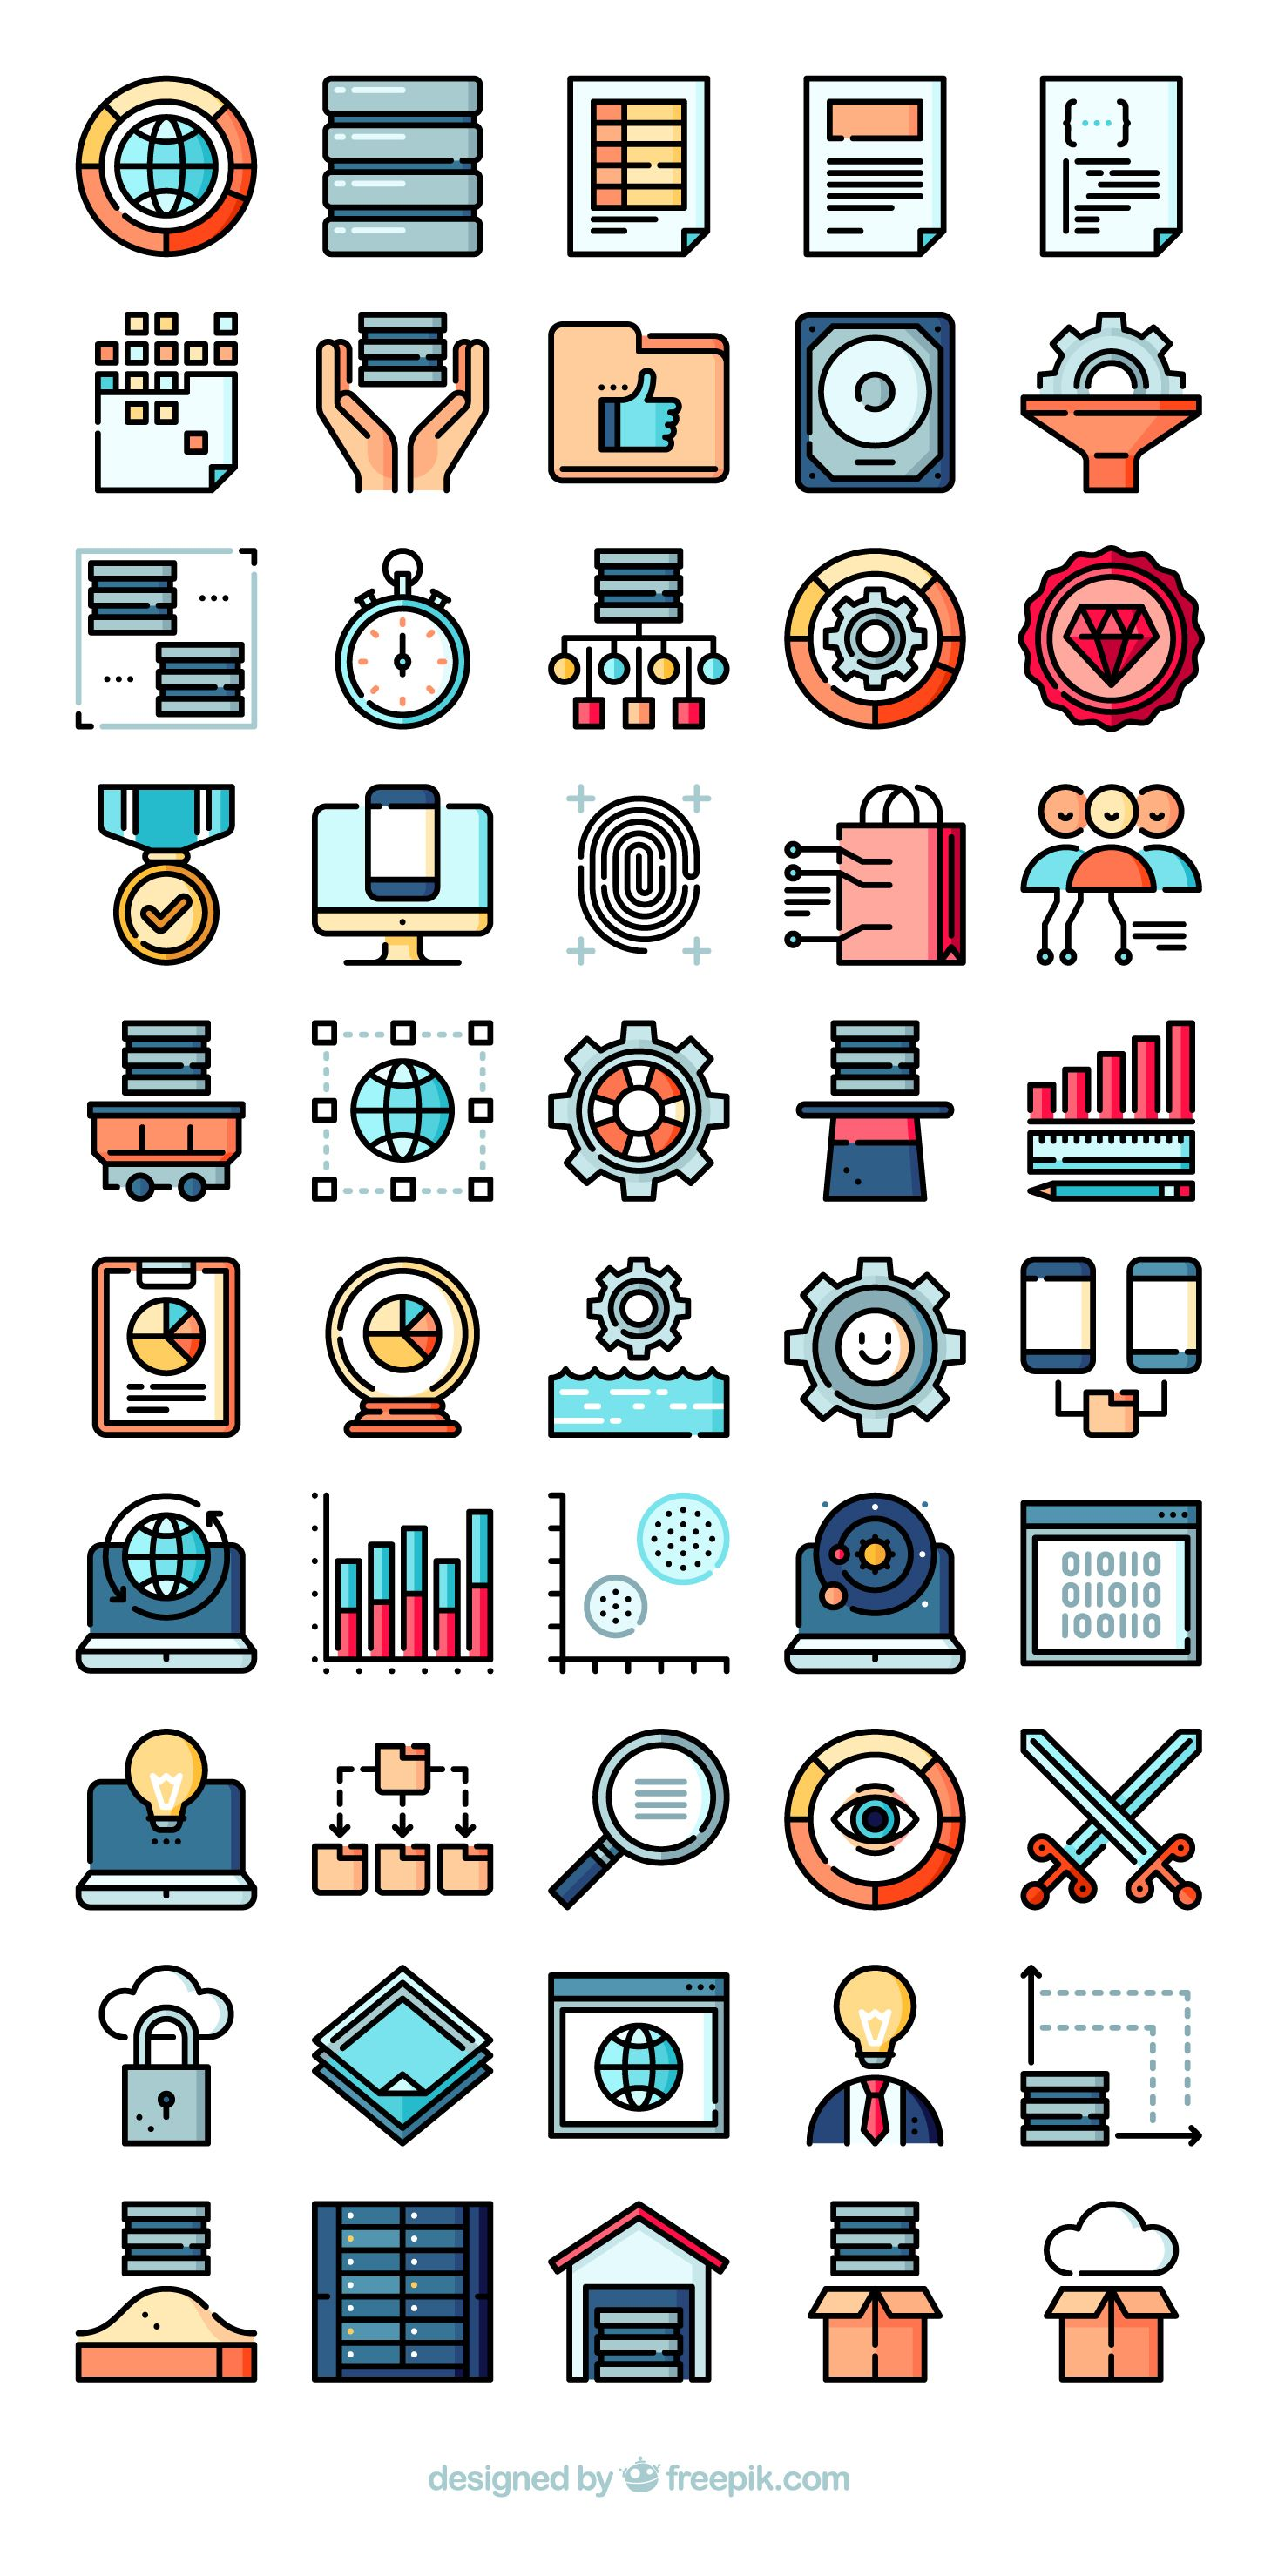 50 free vector icons of Big Data and Web Analytics